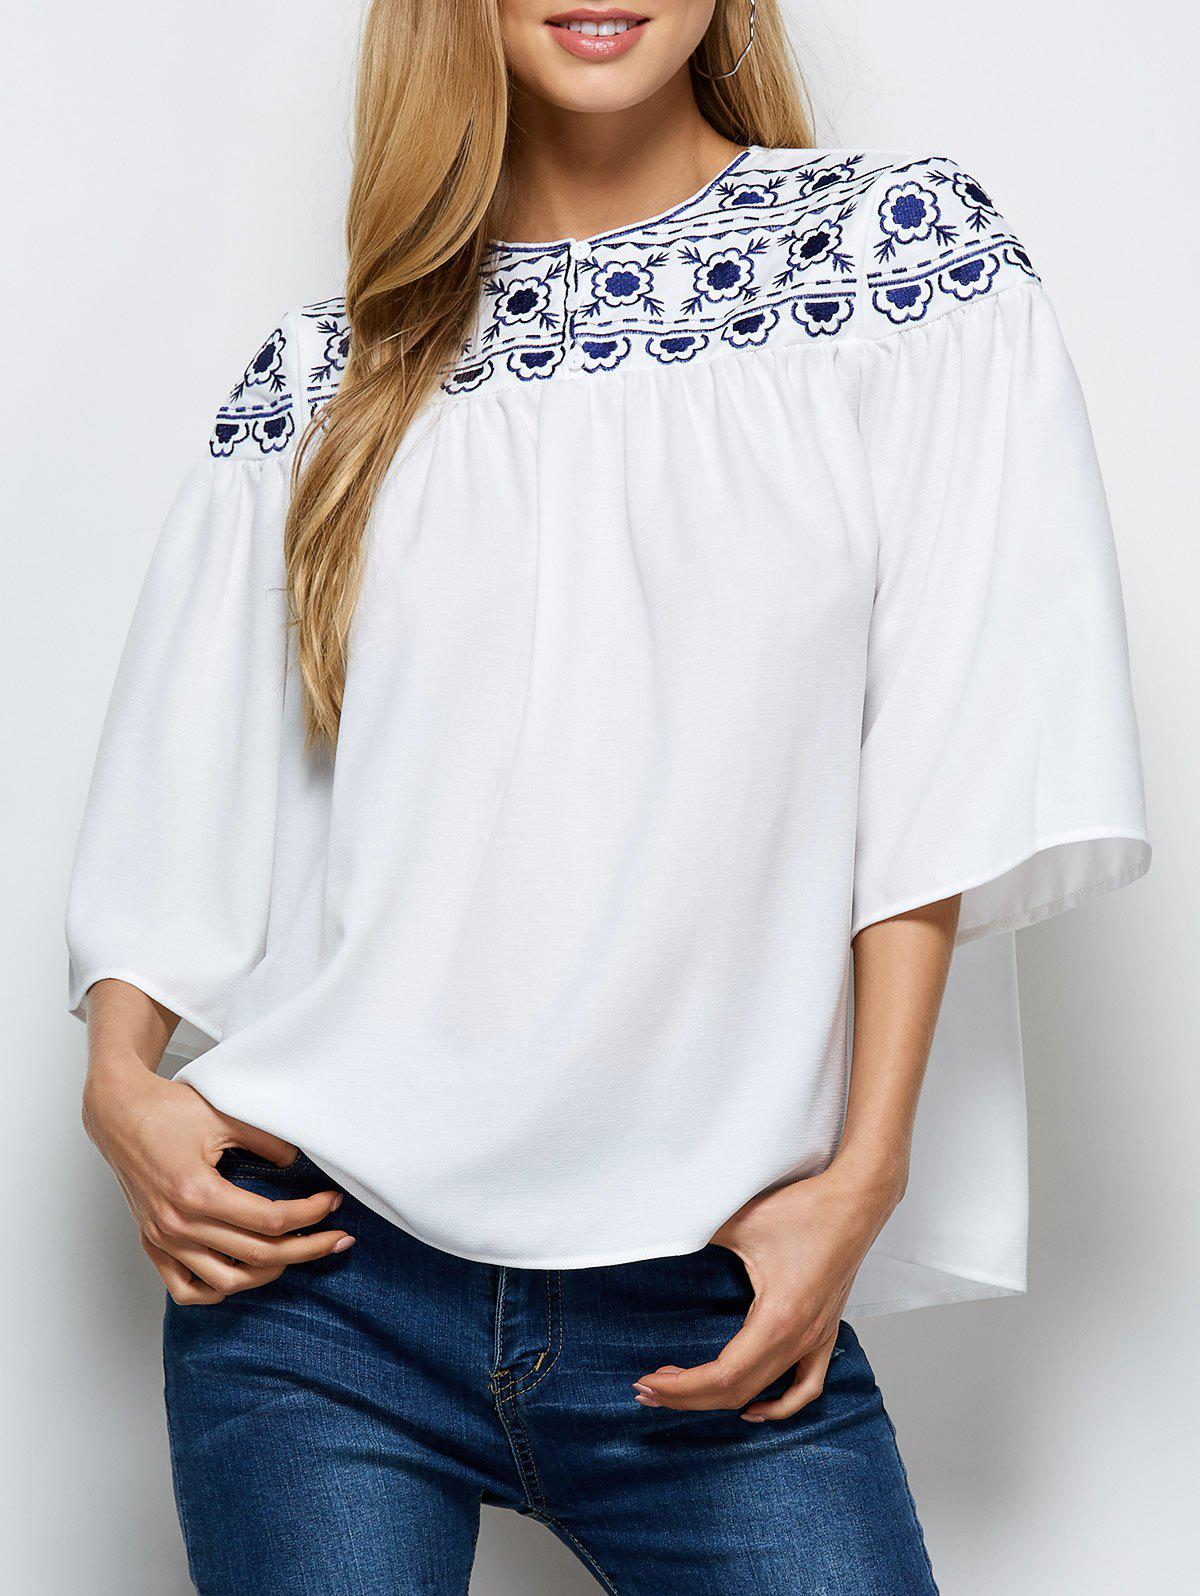 Trendy Retro Embroidery Maxican Peasant Blouse